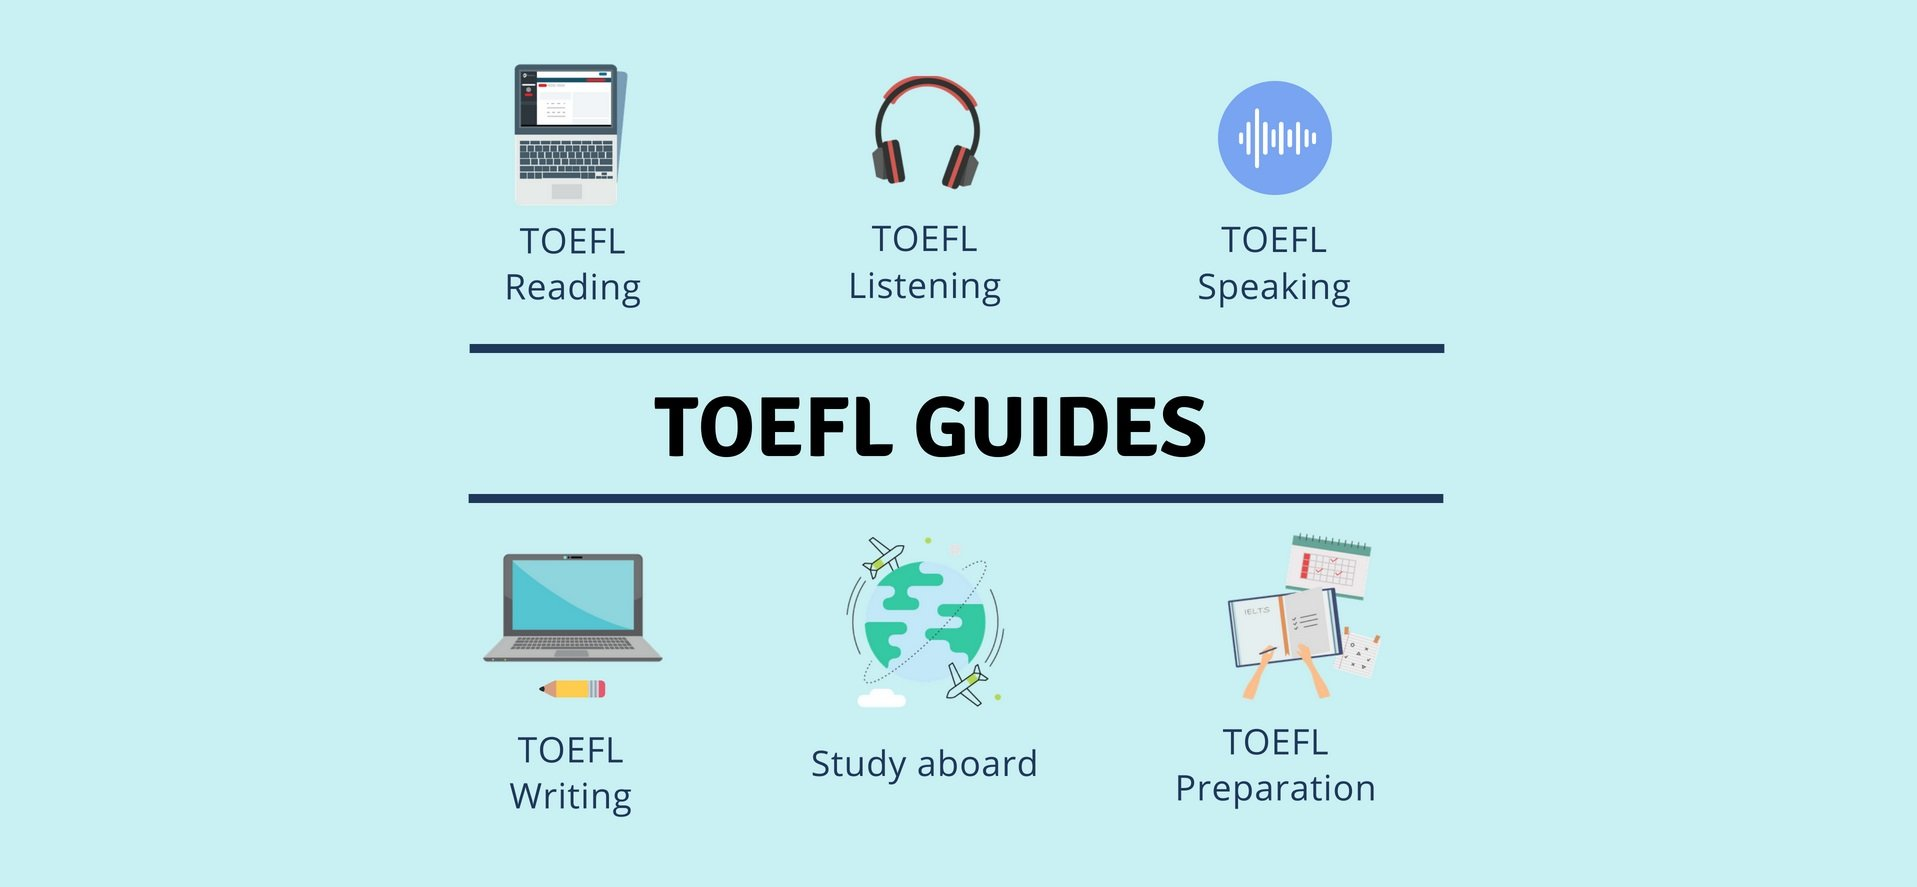 TOEFL Guides: Get Free TOEFL Tips, Lessons, Sample Questions from TOEFL  Experts. If you ...